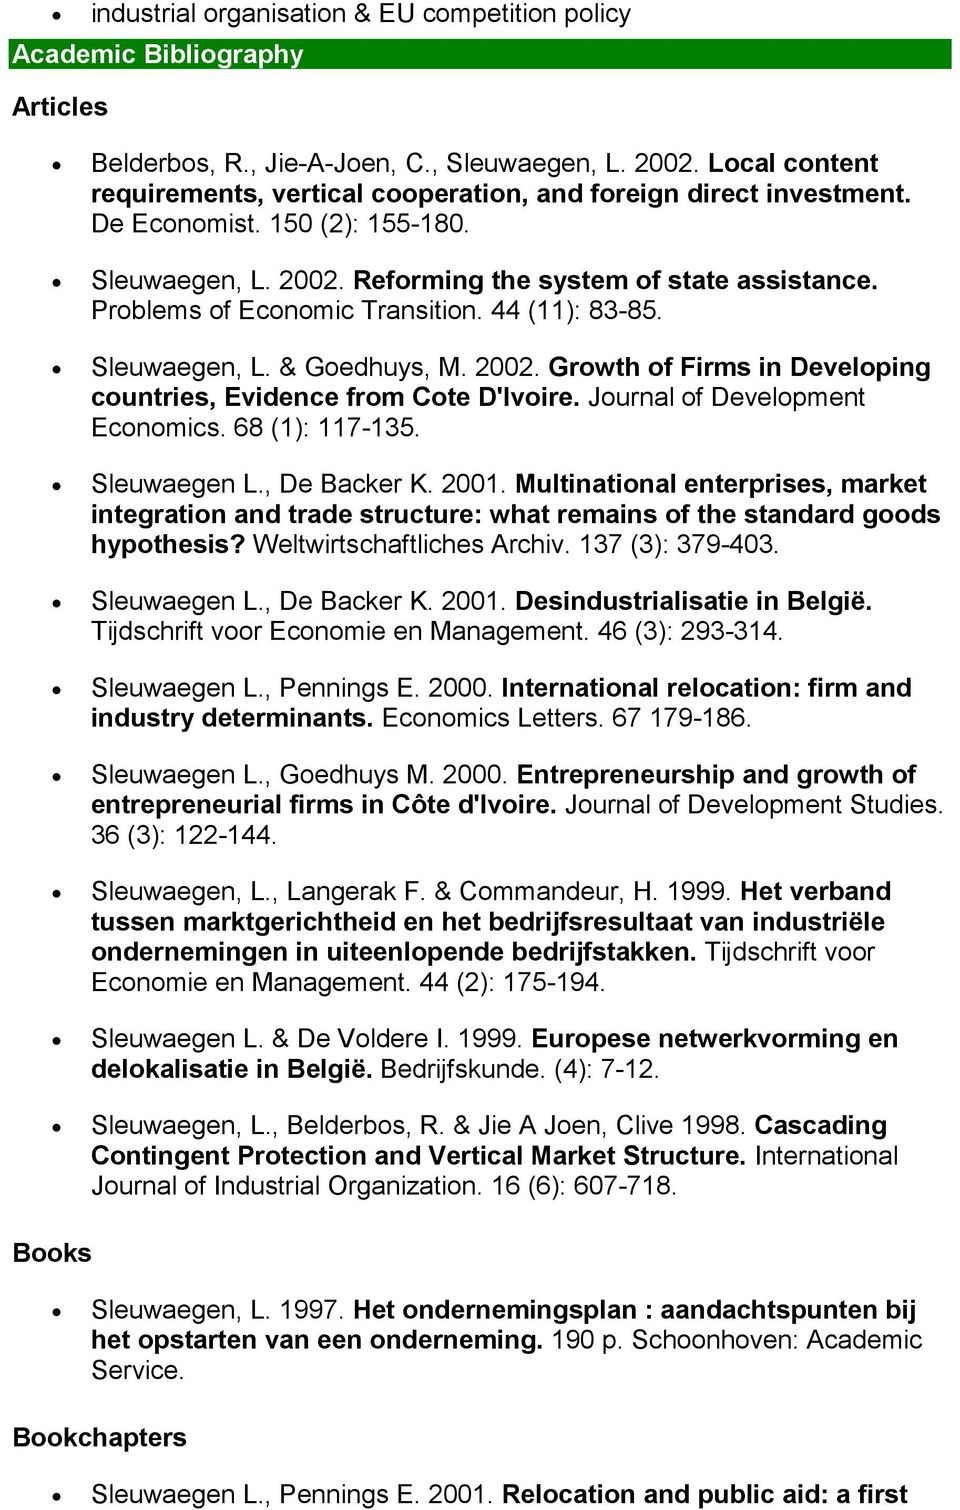 Problems of Economic Transition. 44 (11) 83-85. Sleuwaegen, L. & Goedhuys, M. 2002. Growth of Firms in Developing countries, Evidence from Cote D'Ivoire. Journal of Development Economics.